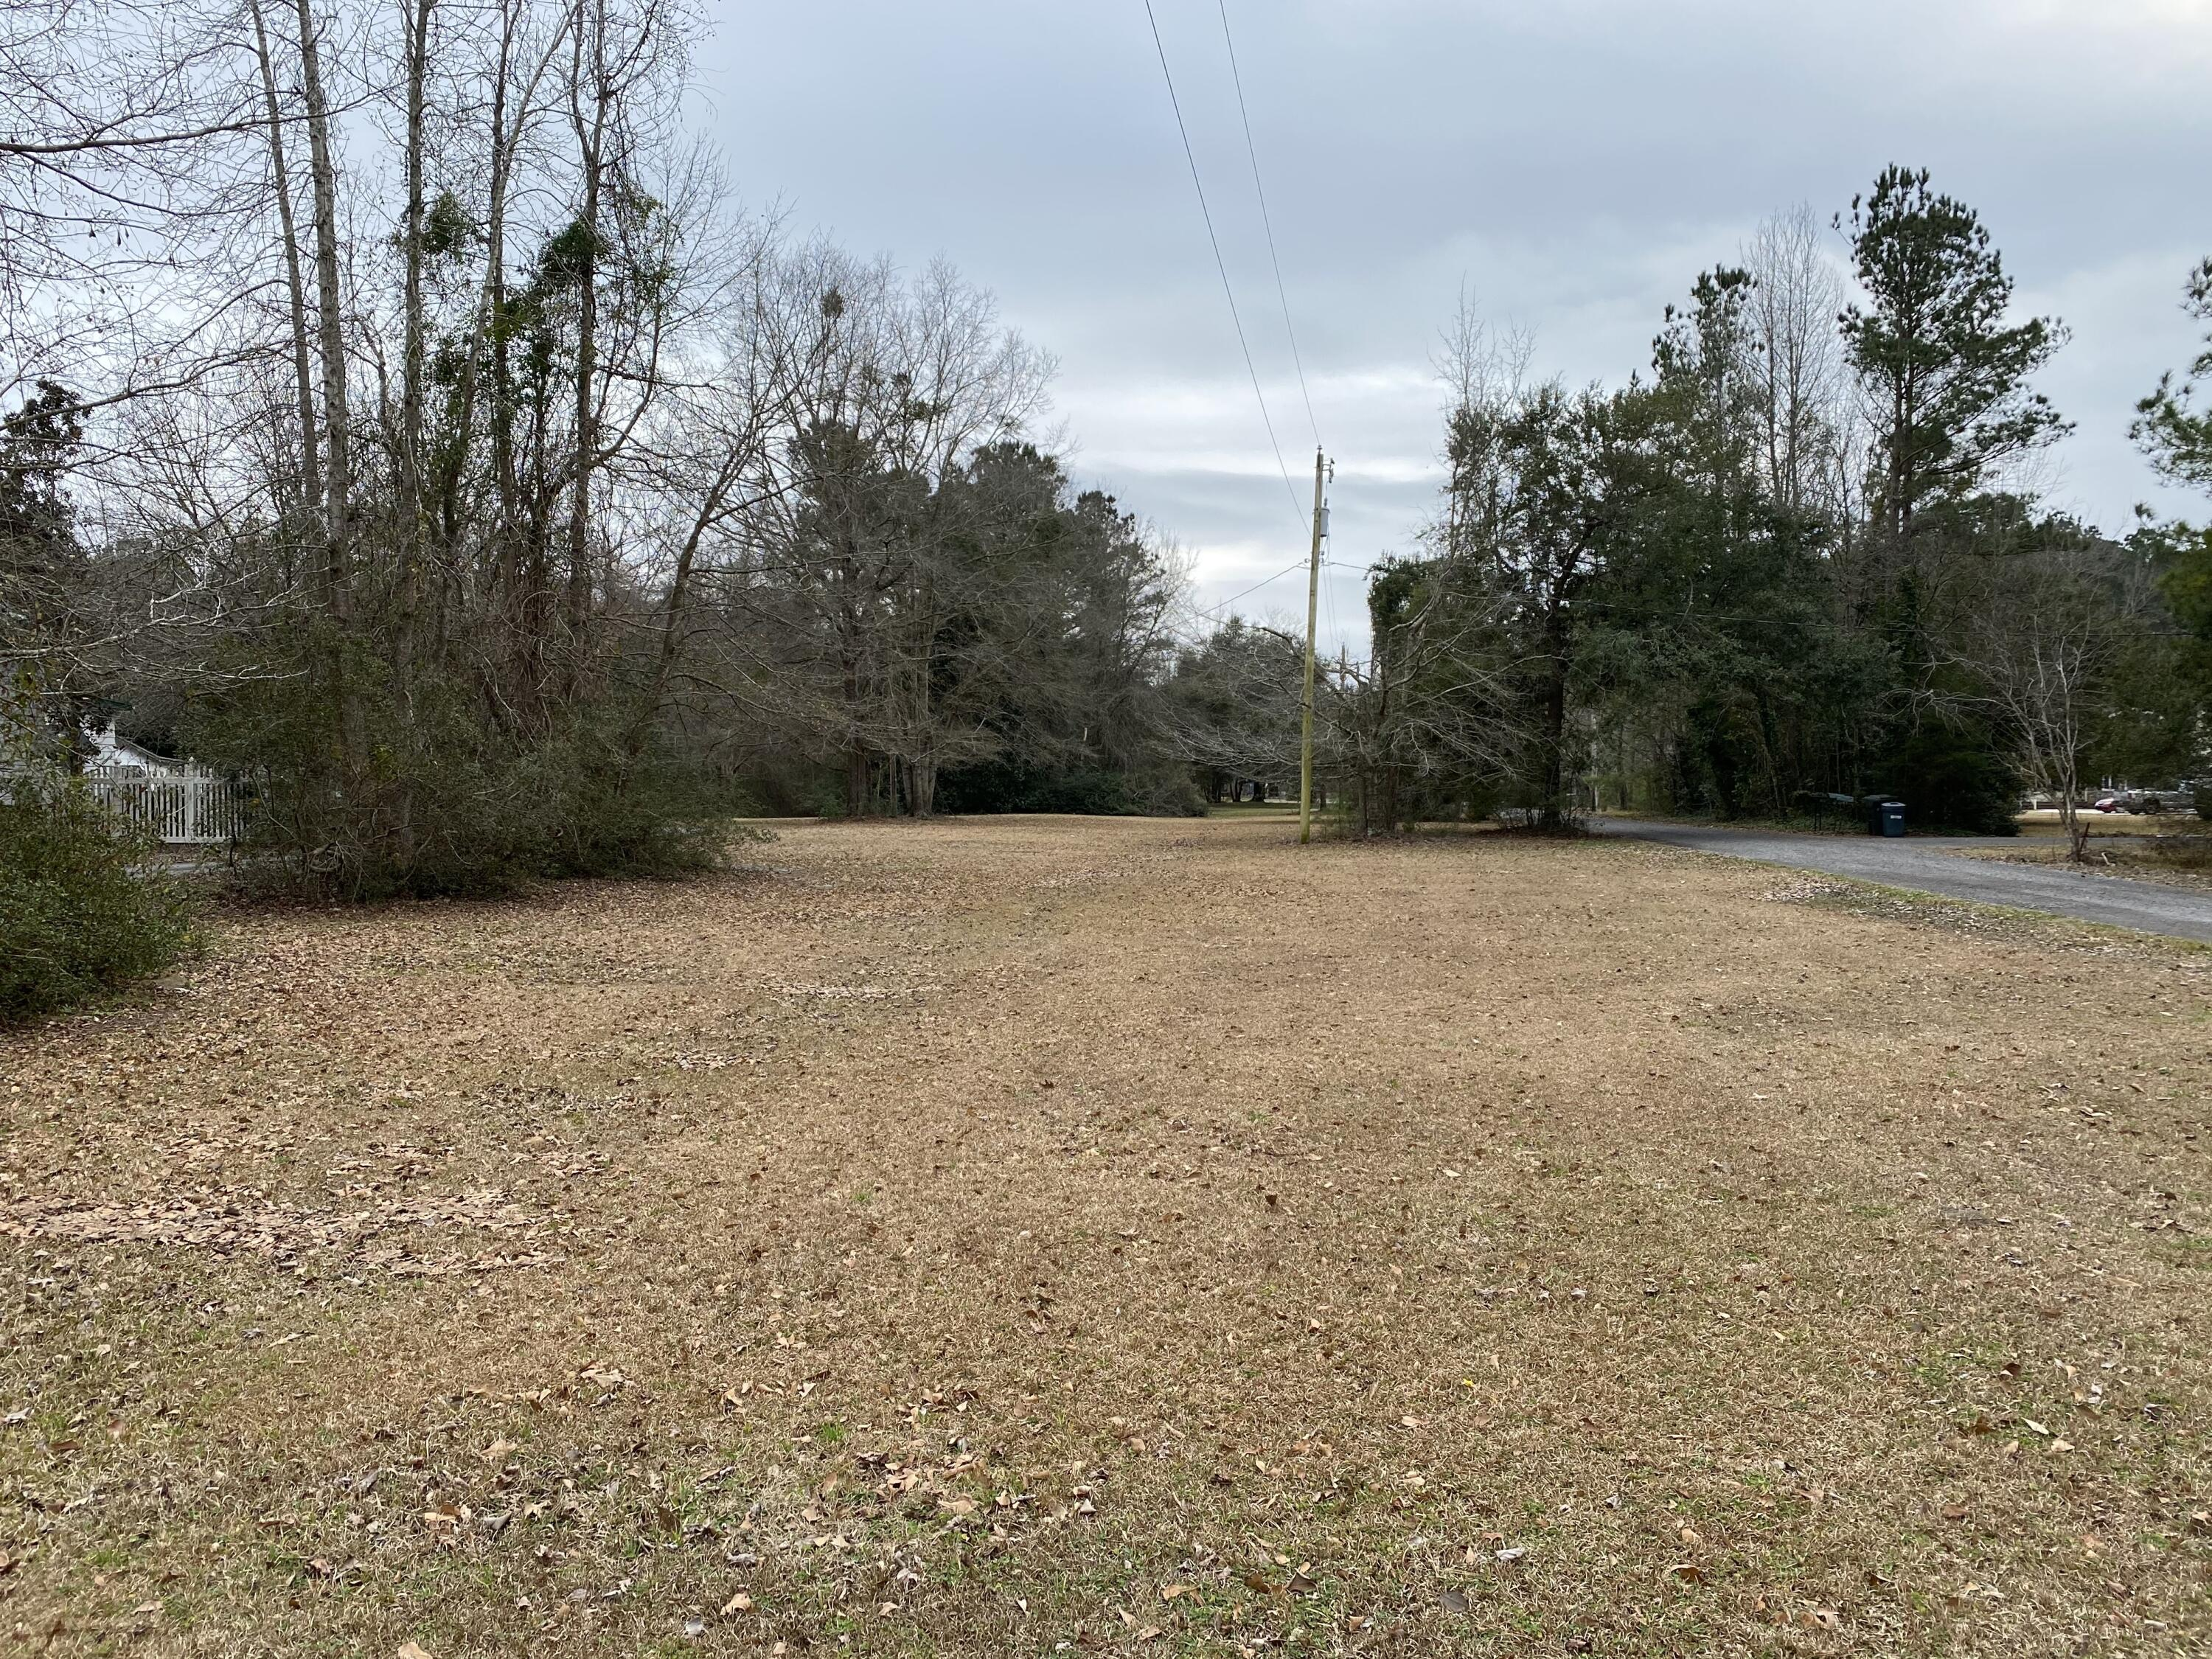 000-C S Williams Drive Moncks Corner, SC 29461